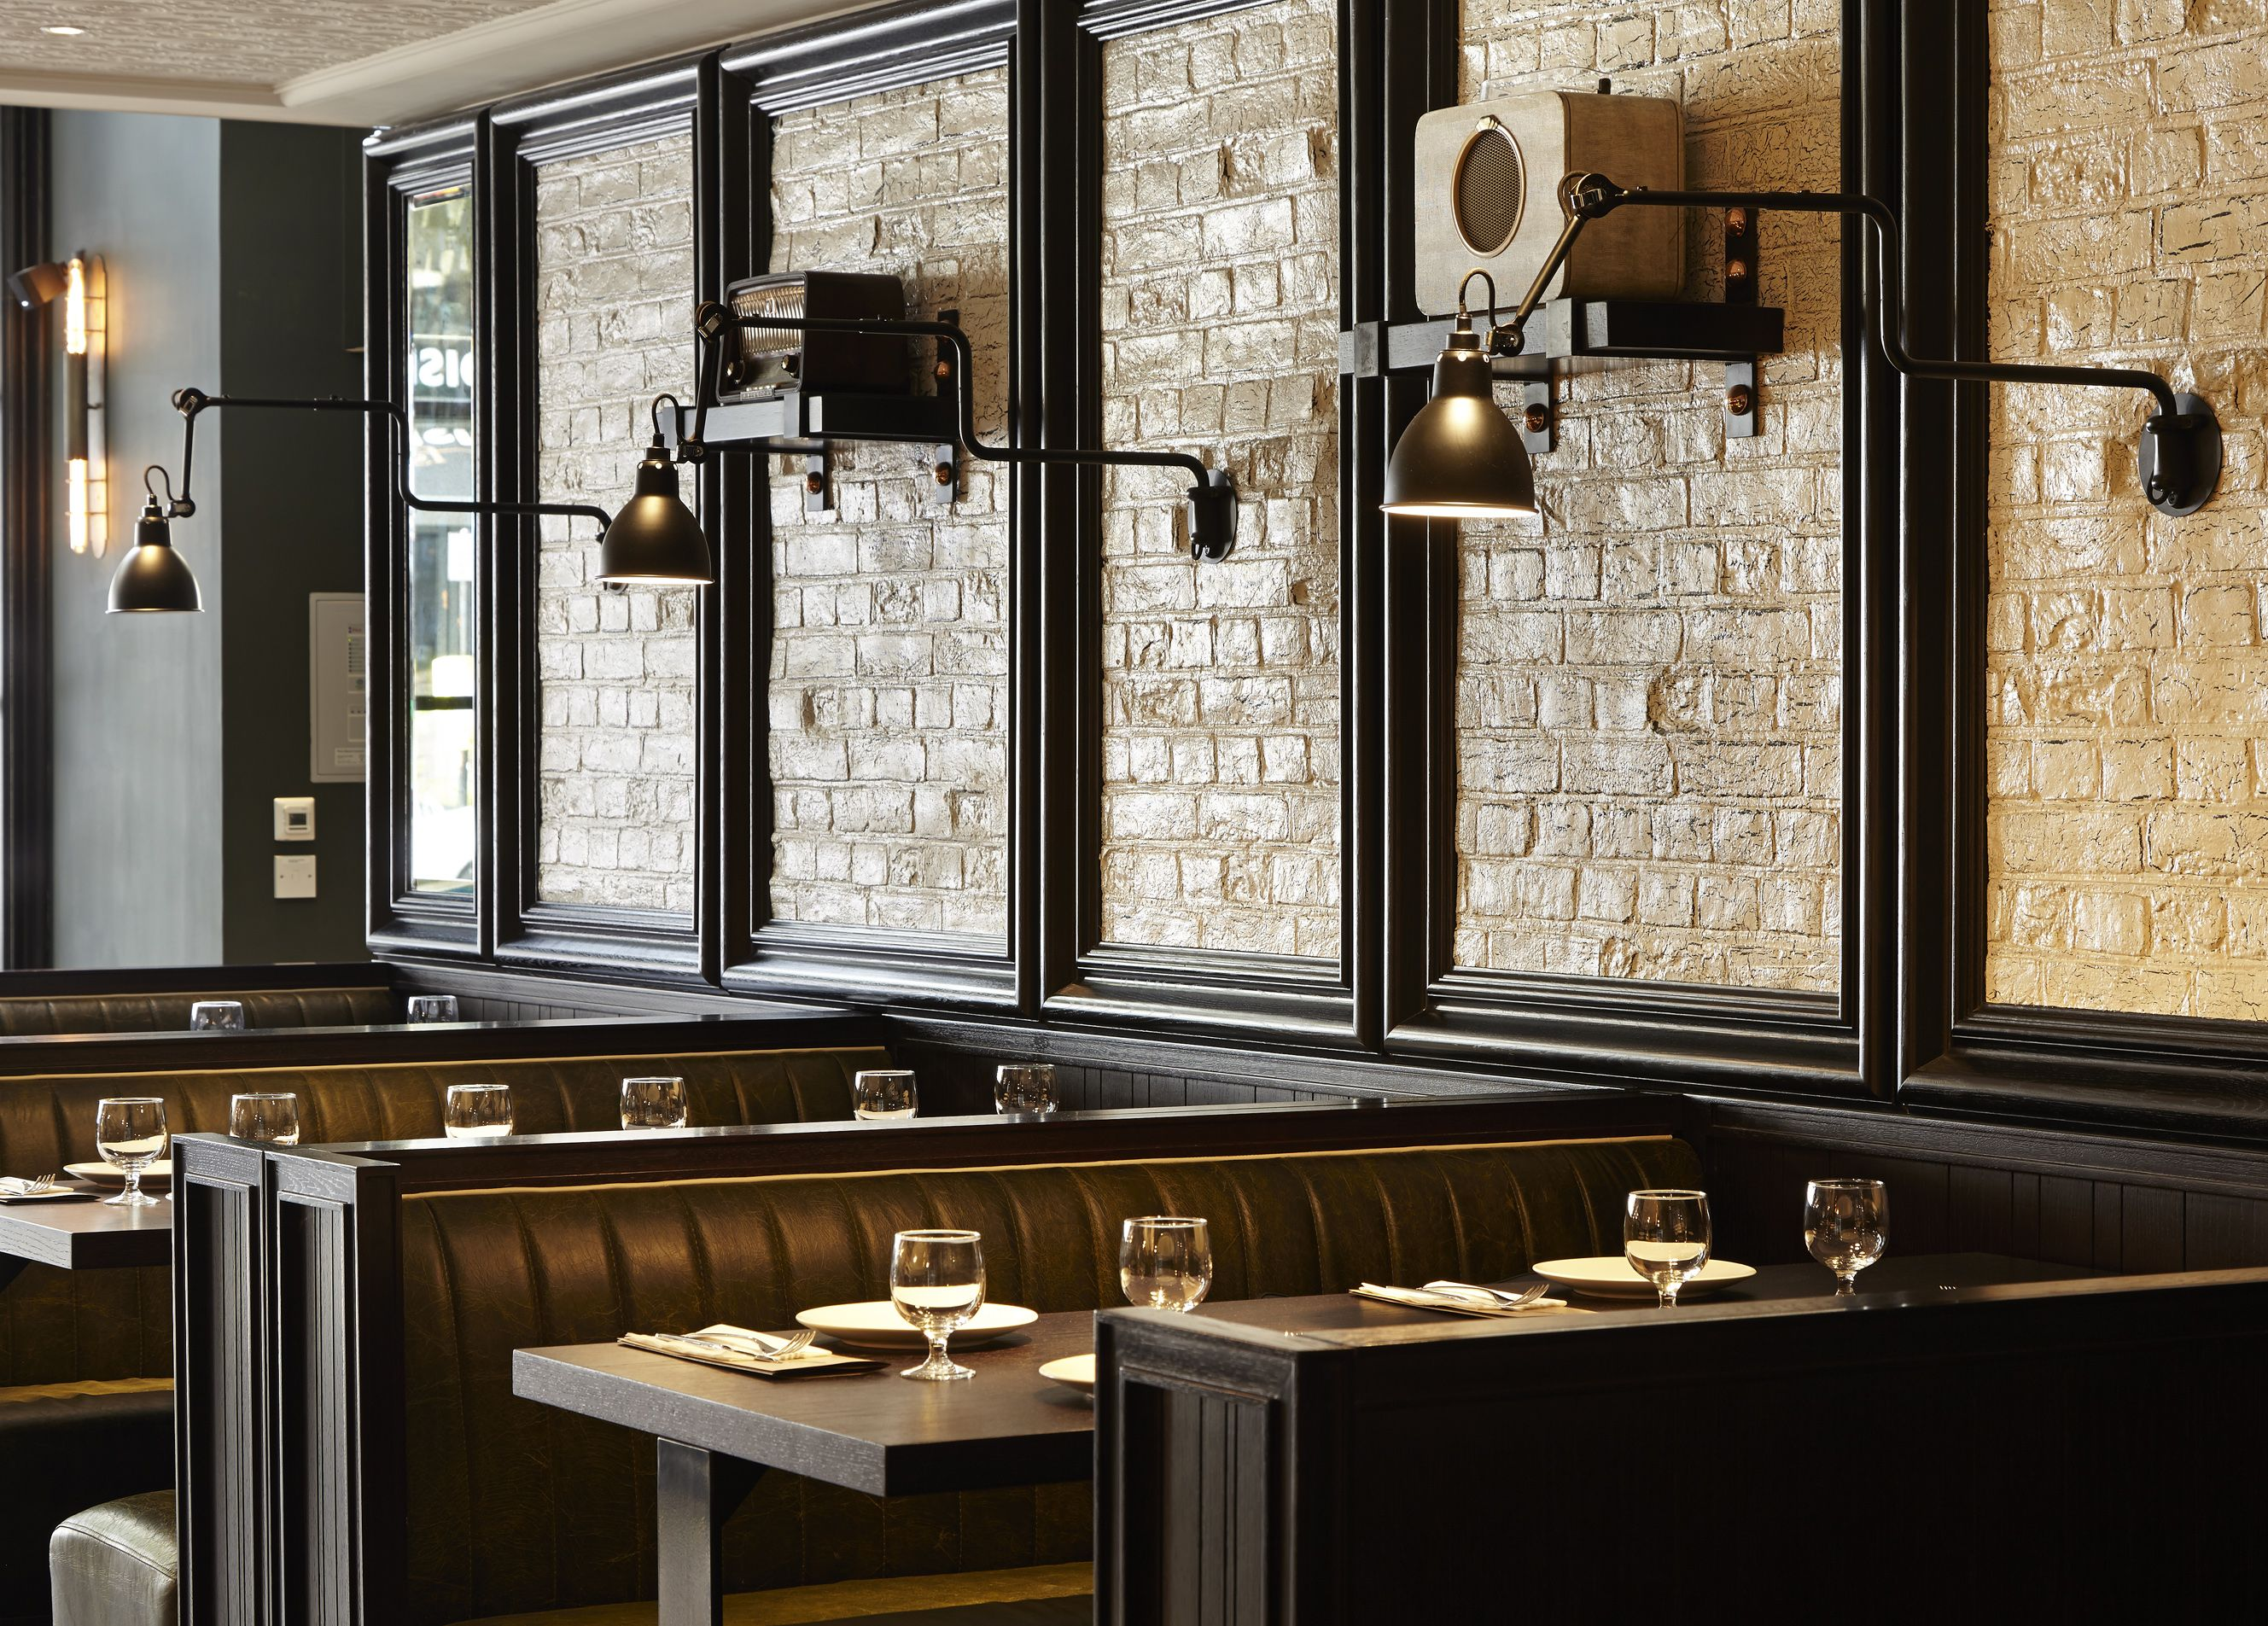 Marcus wareing tredwellus london robert angell design